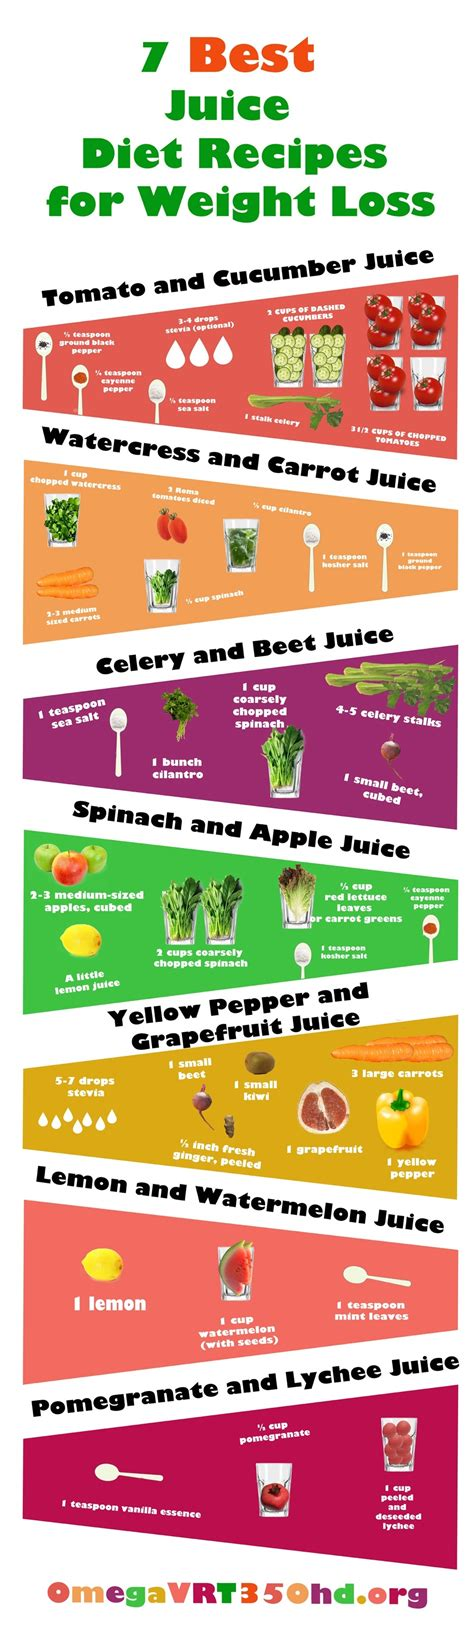 weight loss juicing plan 7 simple juicing recipes for weight loss infographic